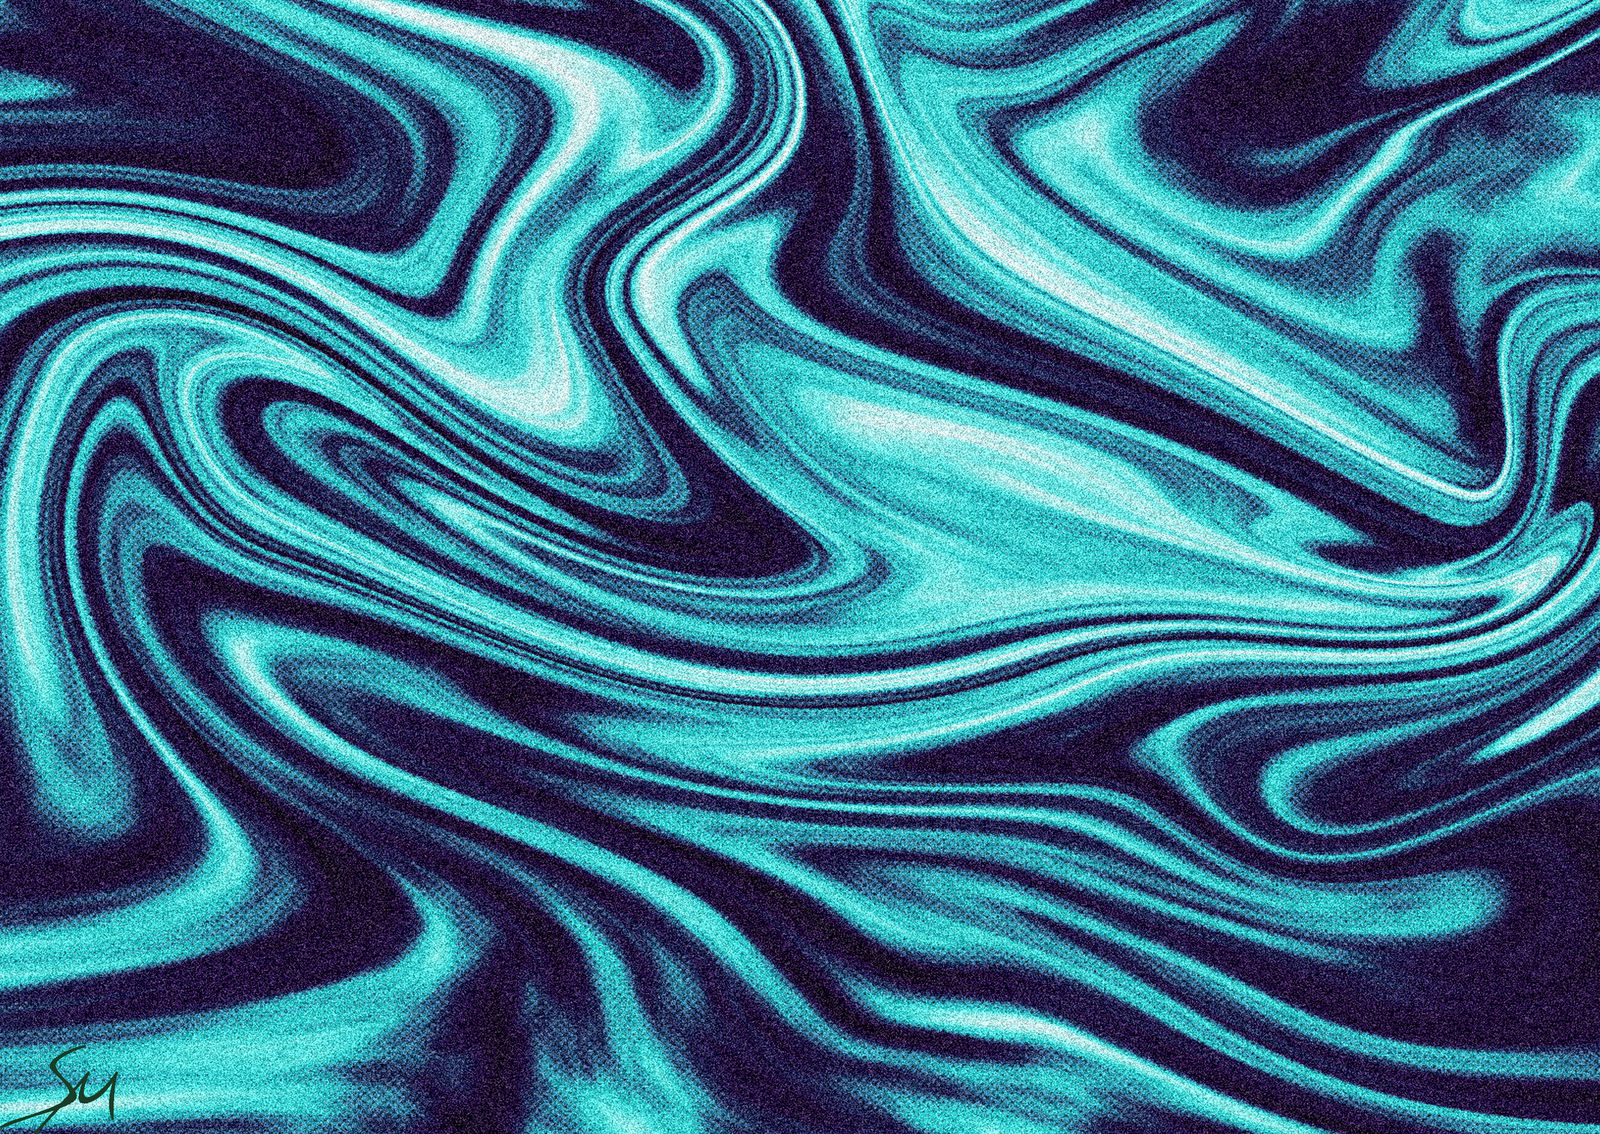 Liquified Clouds 0609